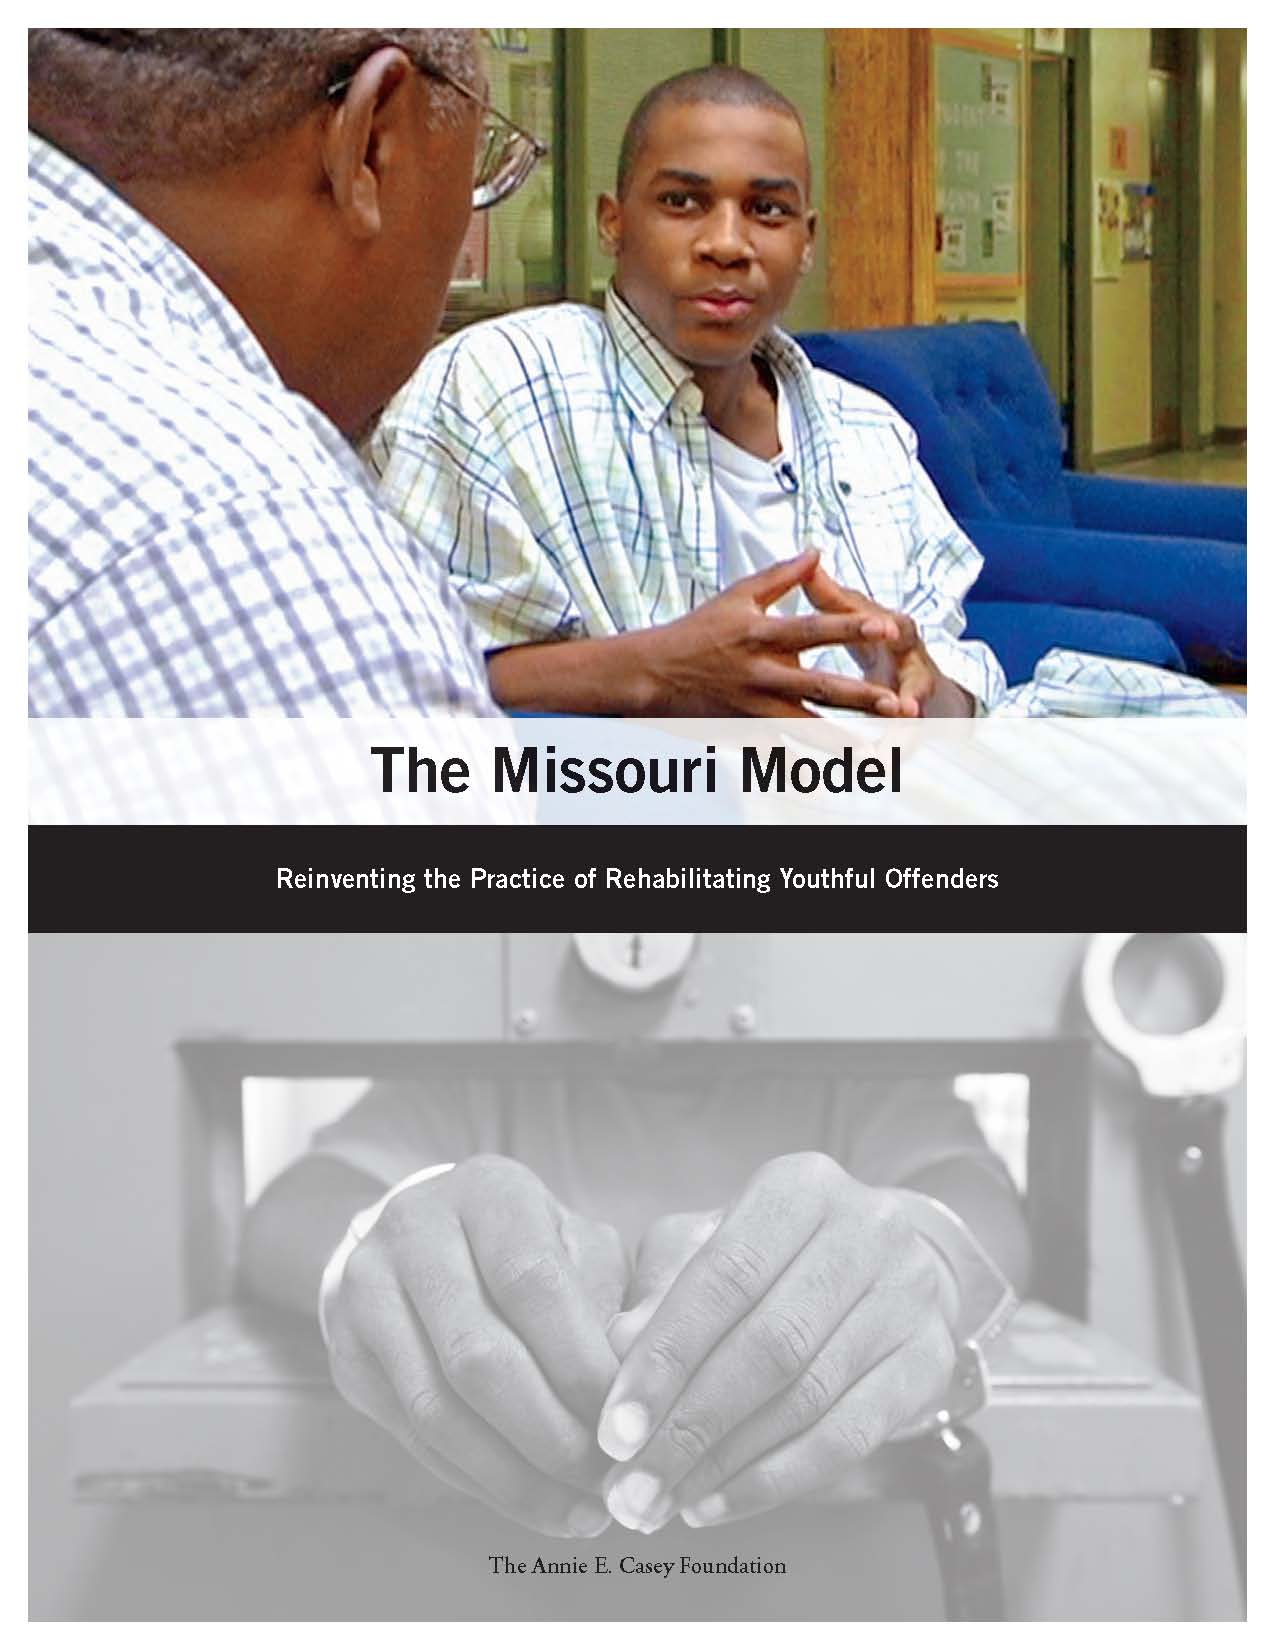 The Missouri Model: Reinventing the Practice of Rehabilitation of Youthful Offenders